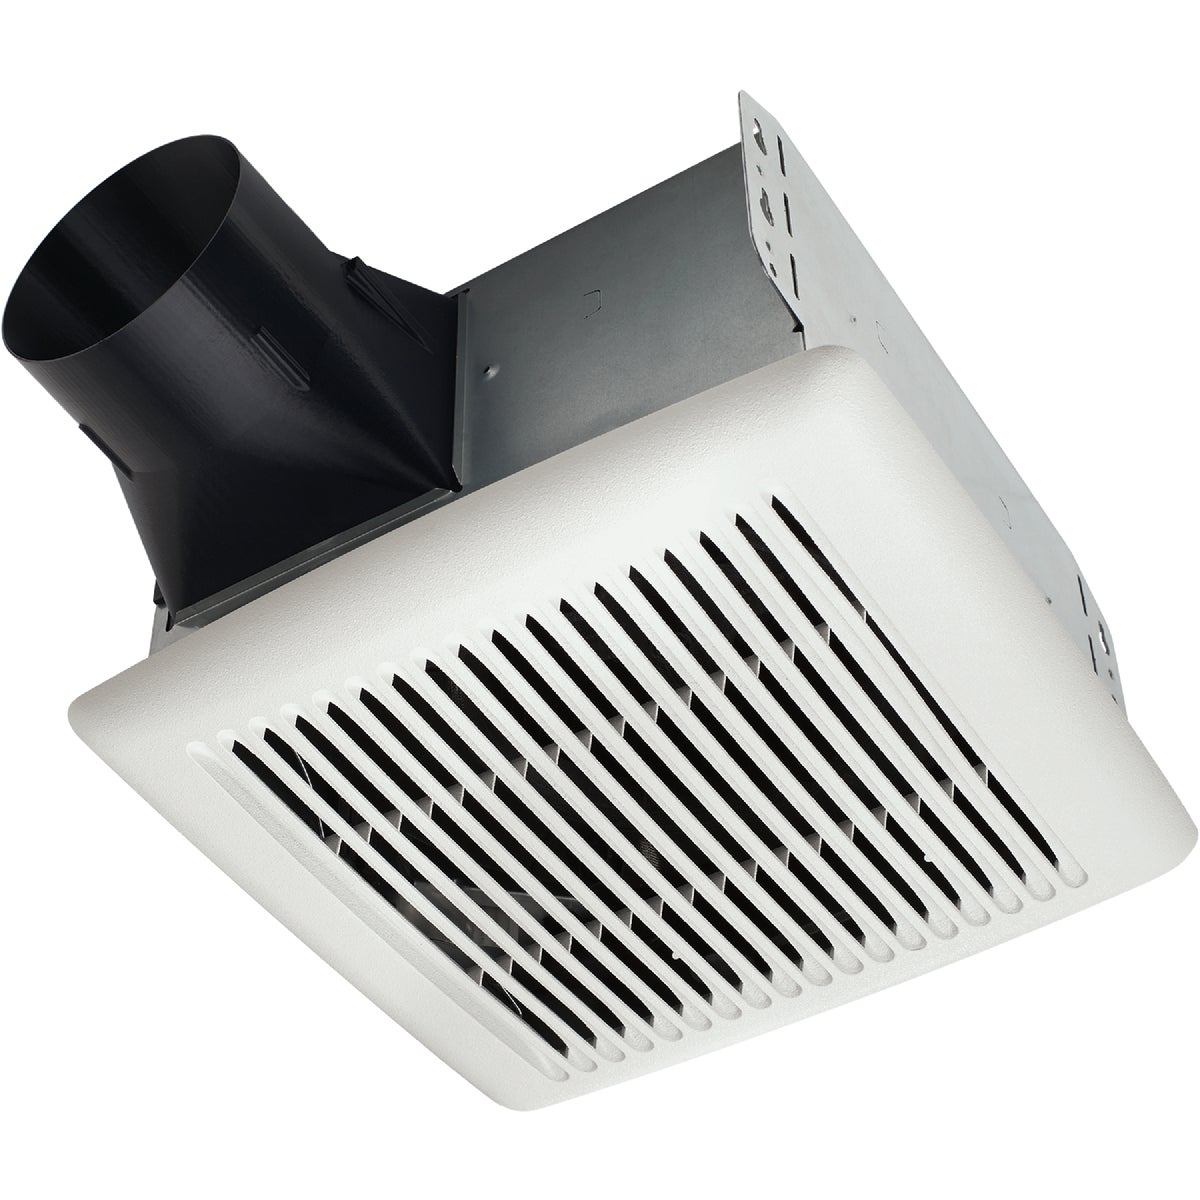 BATH EXHAUST FAN - QTR080 by Broan Nutone